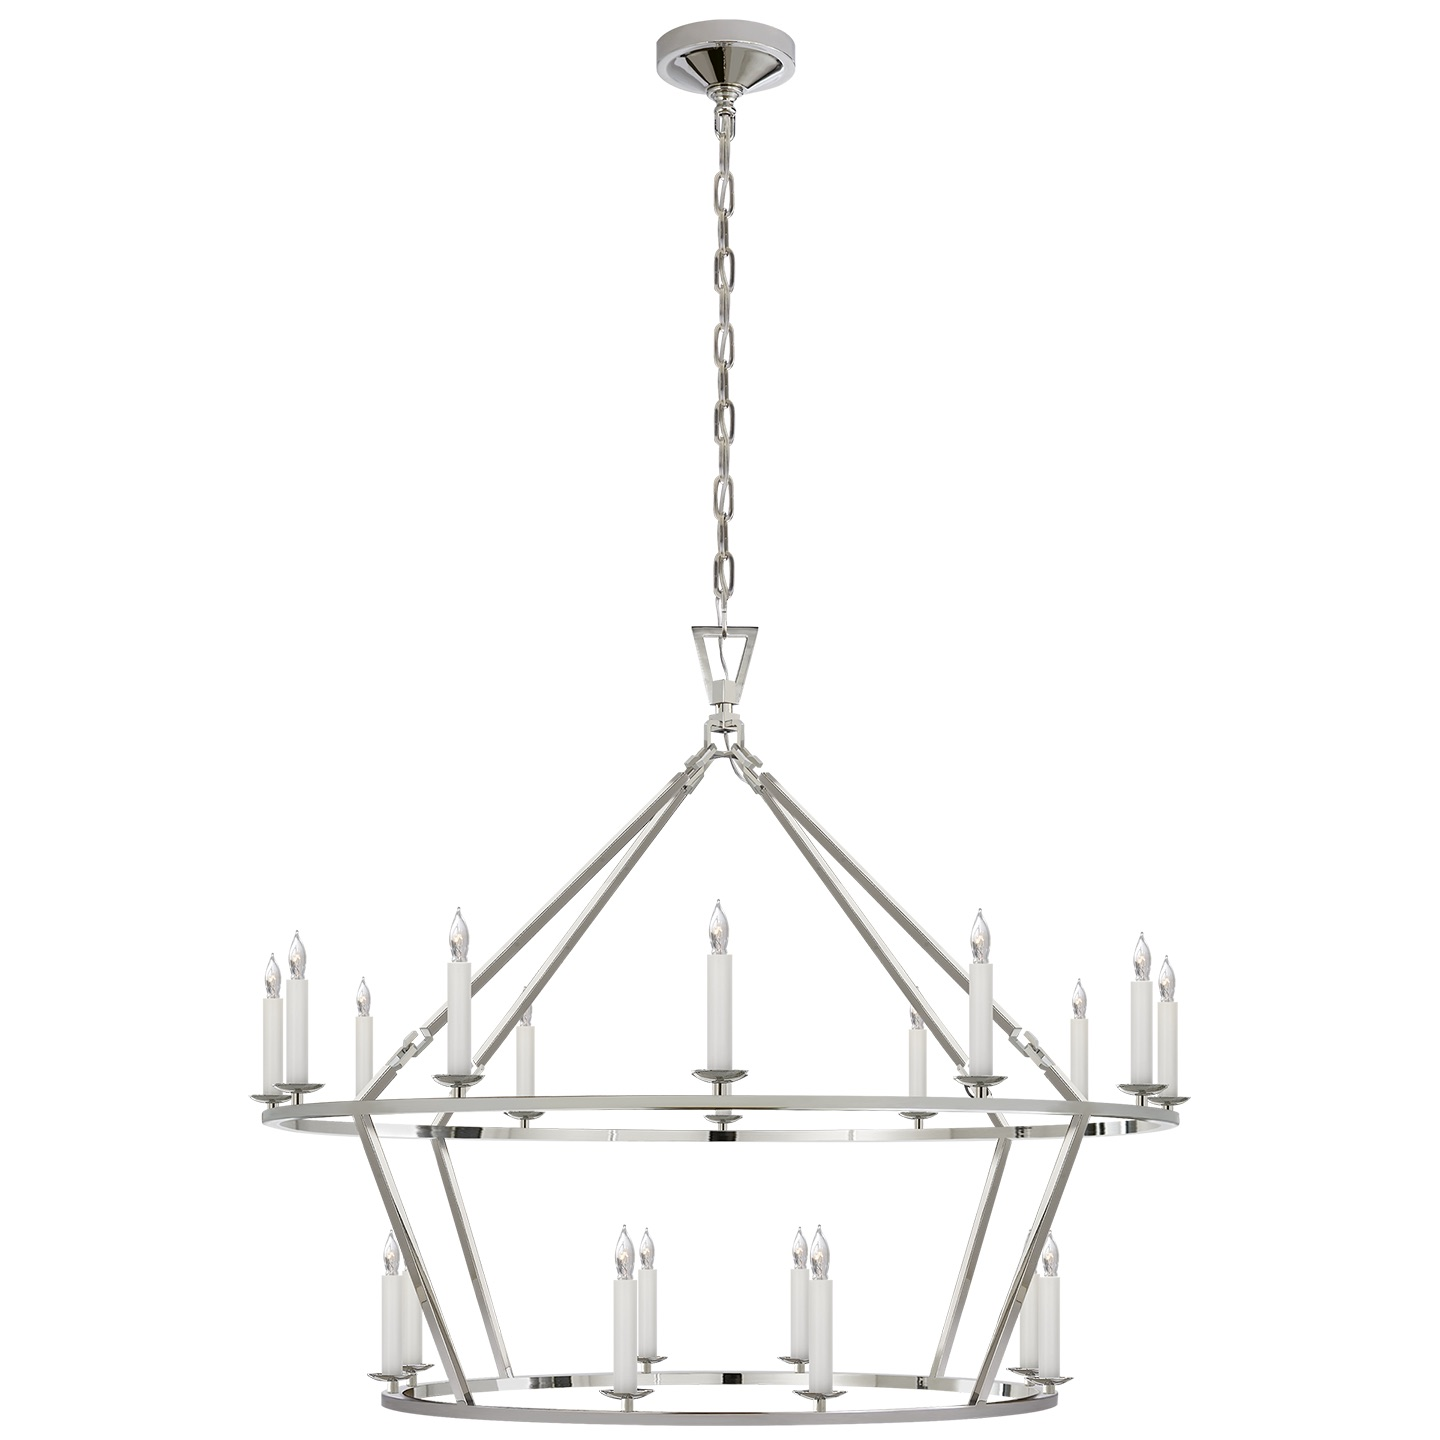 1440x1440 Darlana Large Two Tiered Ring Chandelier Linden Rose Amp Co.